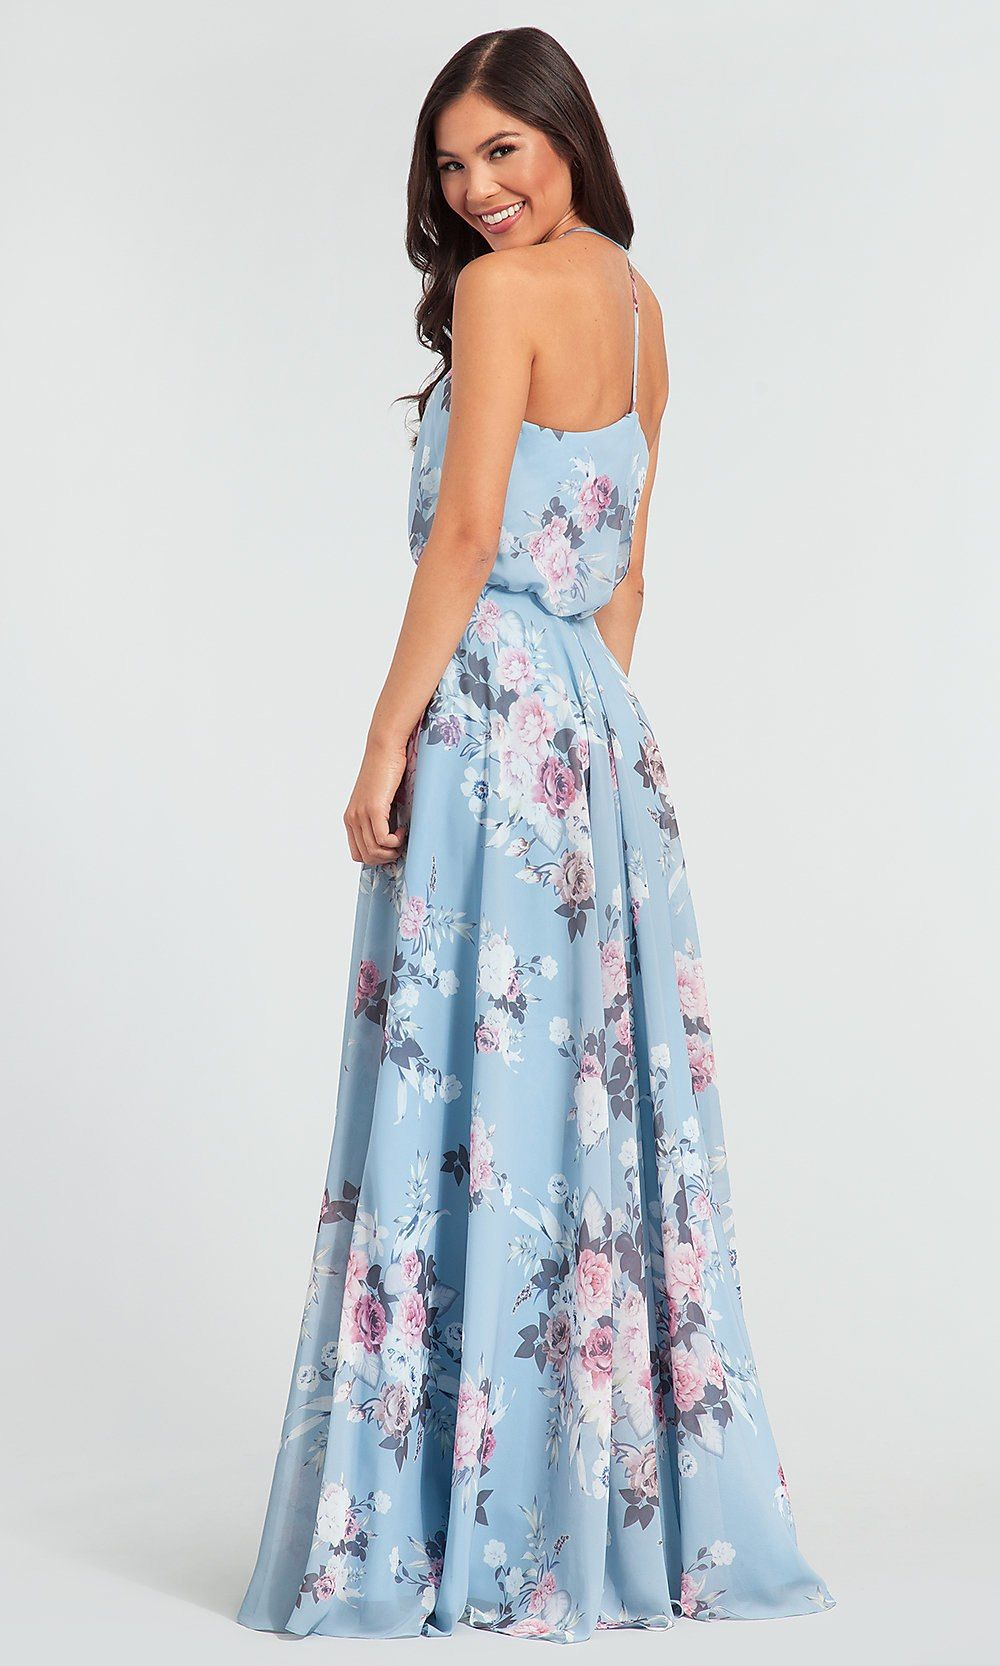 ac121d29f5 Floral-Print Chiffon Bridesmaid Dress by Kleinfeld in 2019